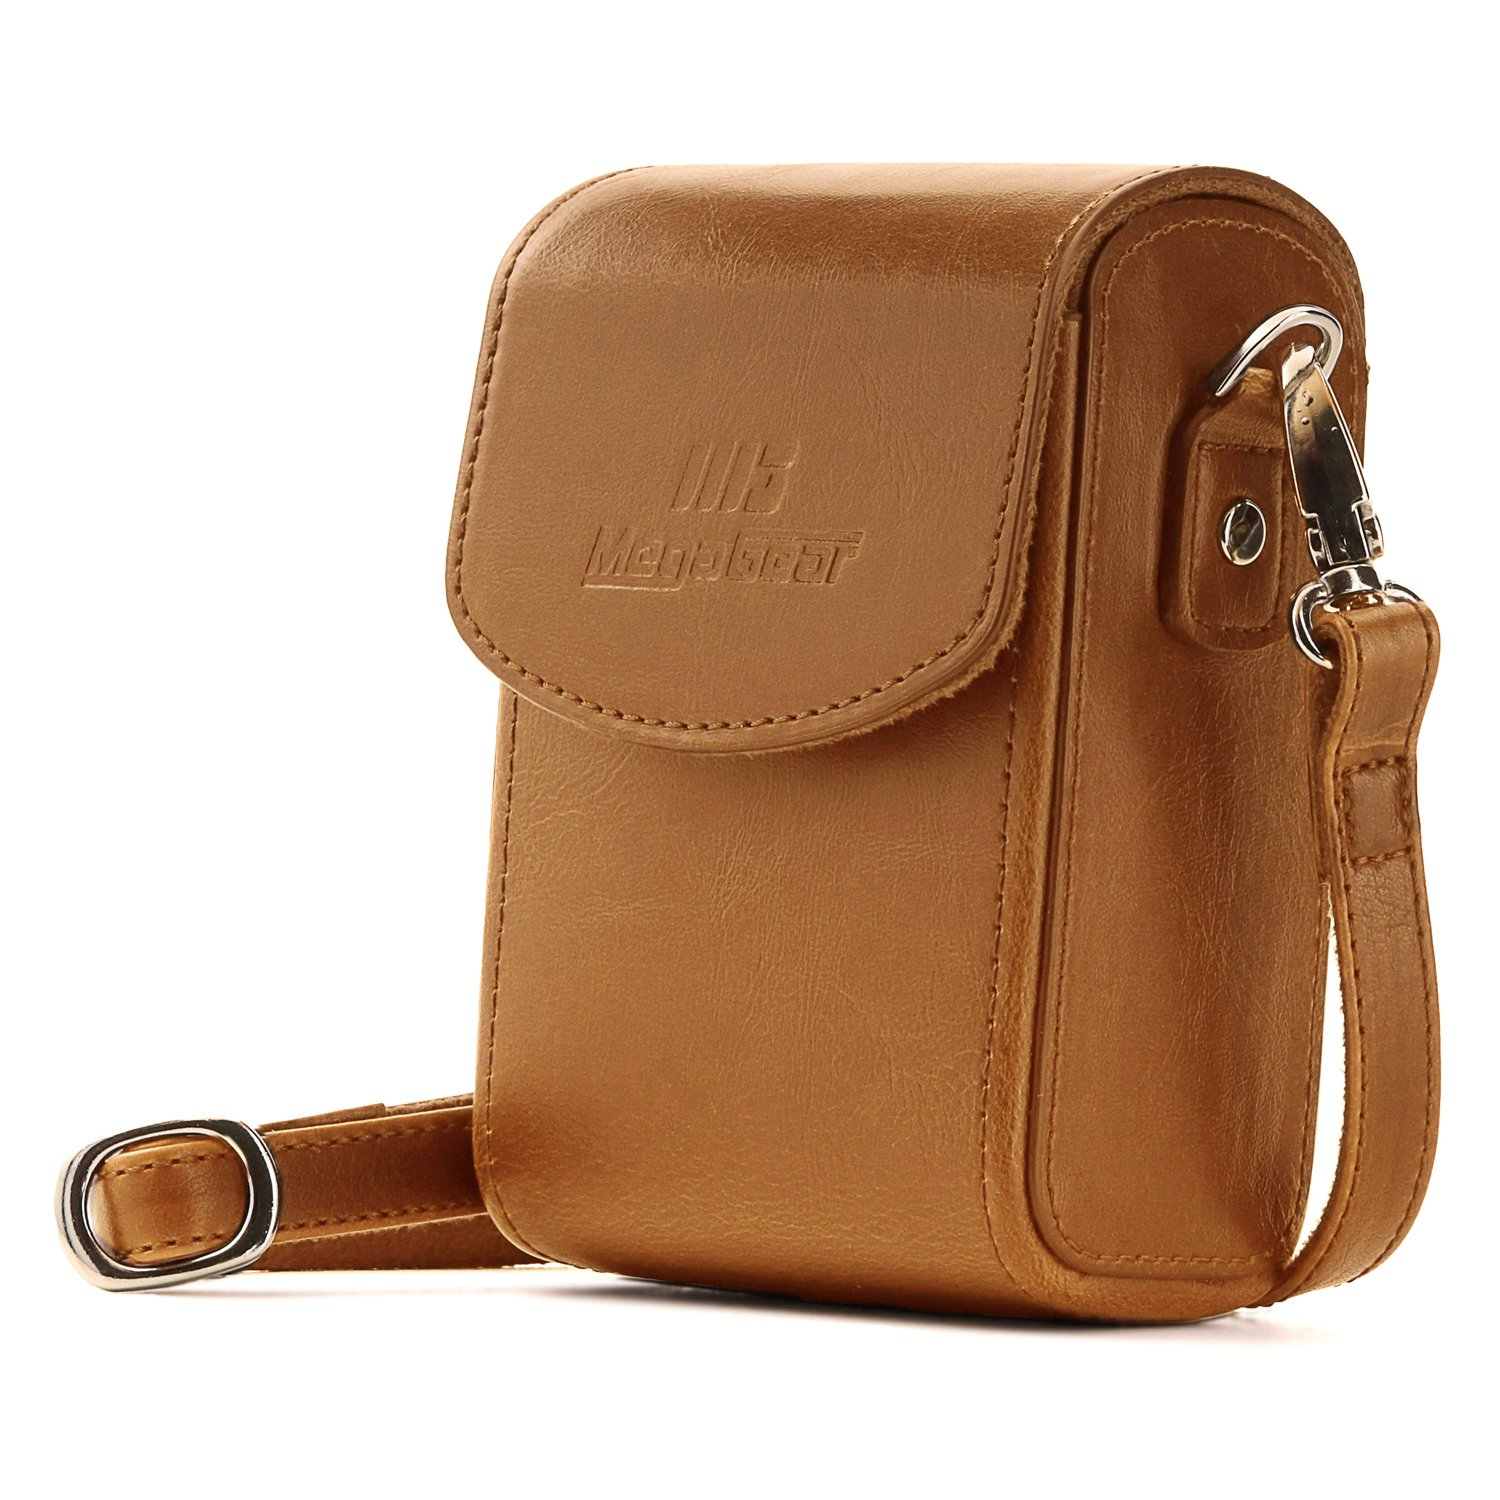 MegaGear MG1504 Canon PowerShot SX740 HS, SX730 HS Leather Camera Case with Strap - Light Brown MG1506